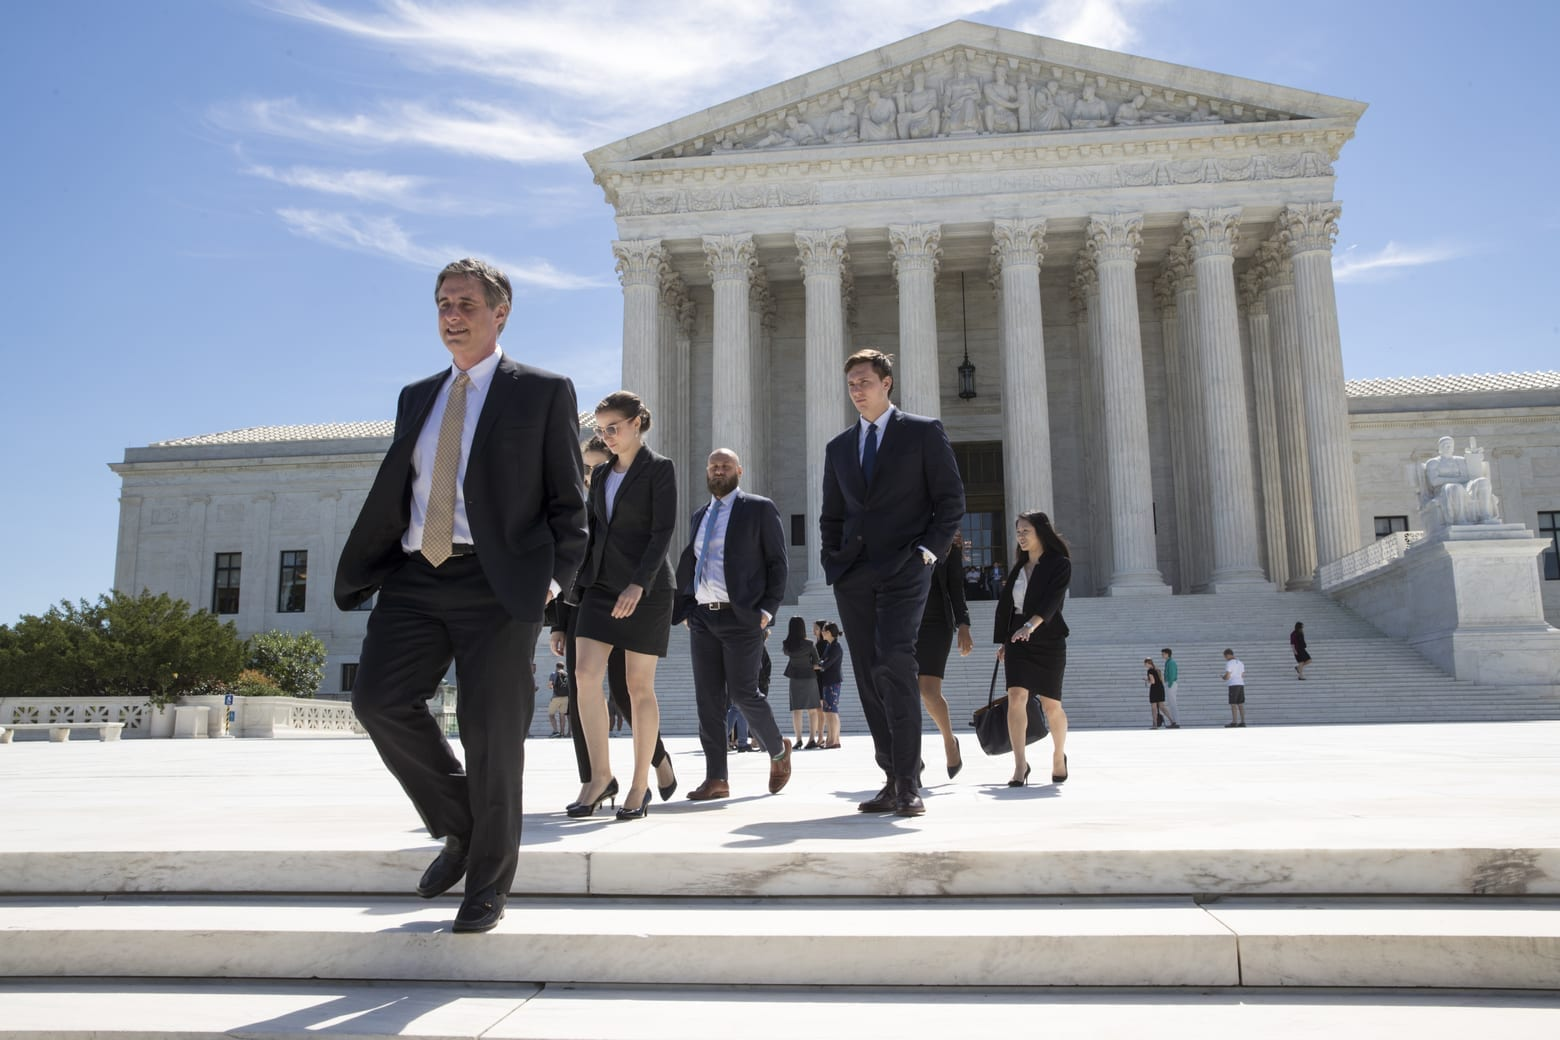 US Court's criteria for travel ban may lead to confusion